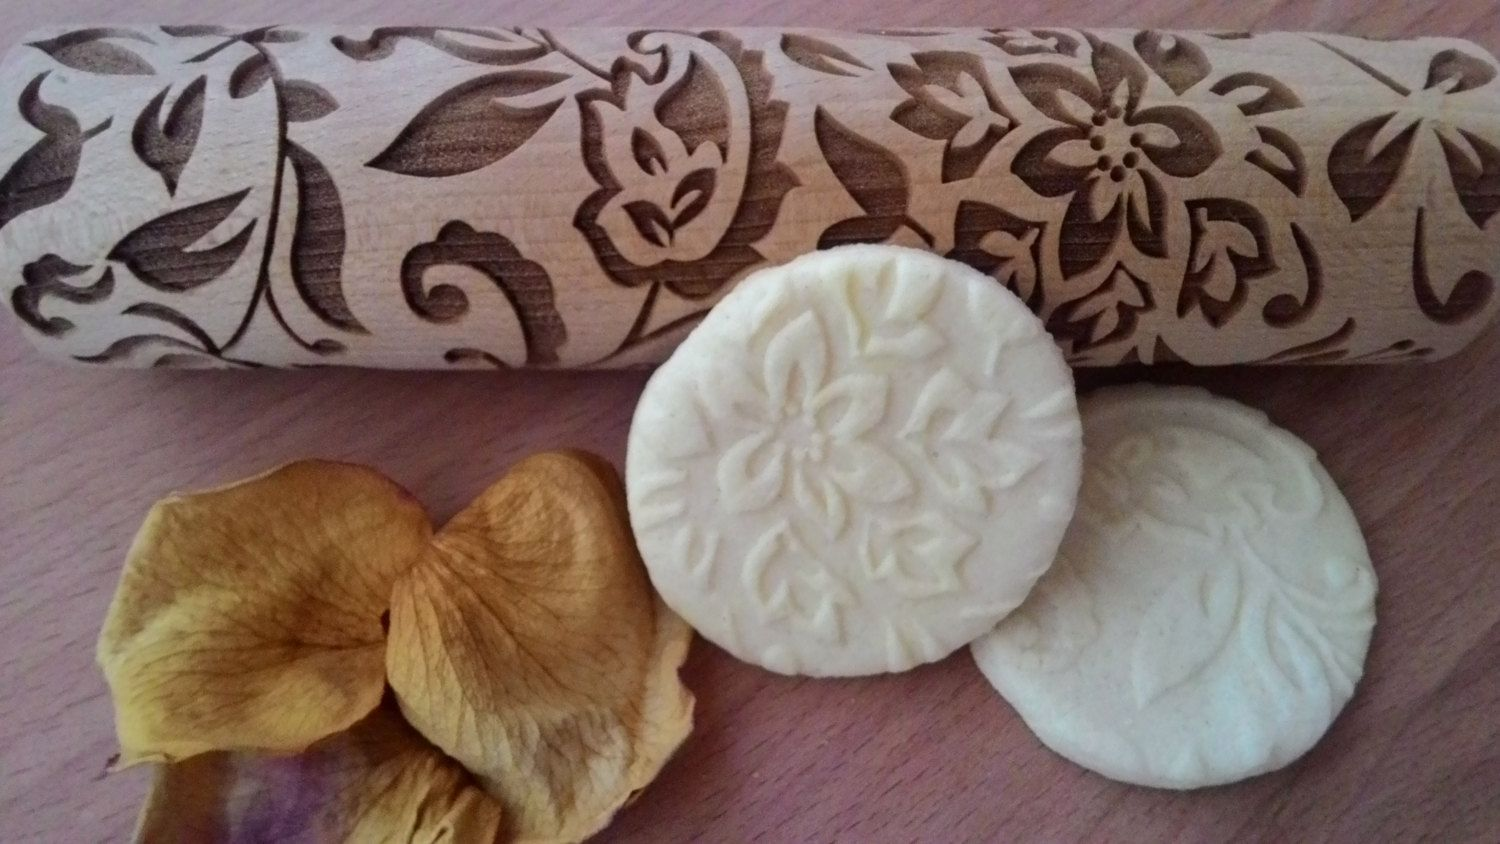 Wooden Rolling Pin Sophisticated Flover Design Pattern Laser Cut